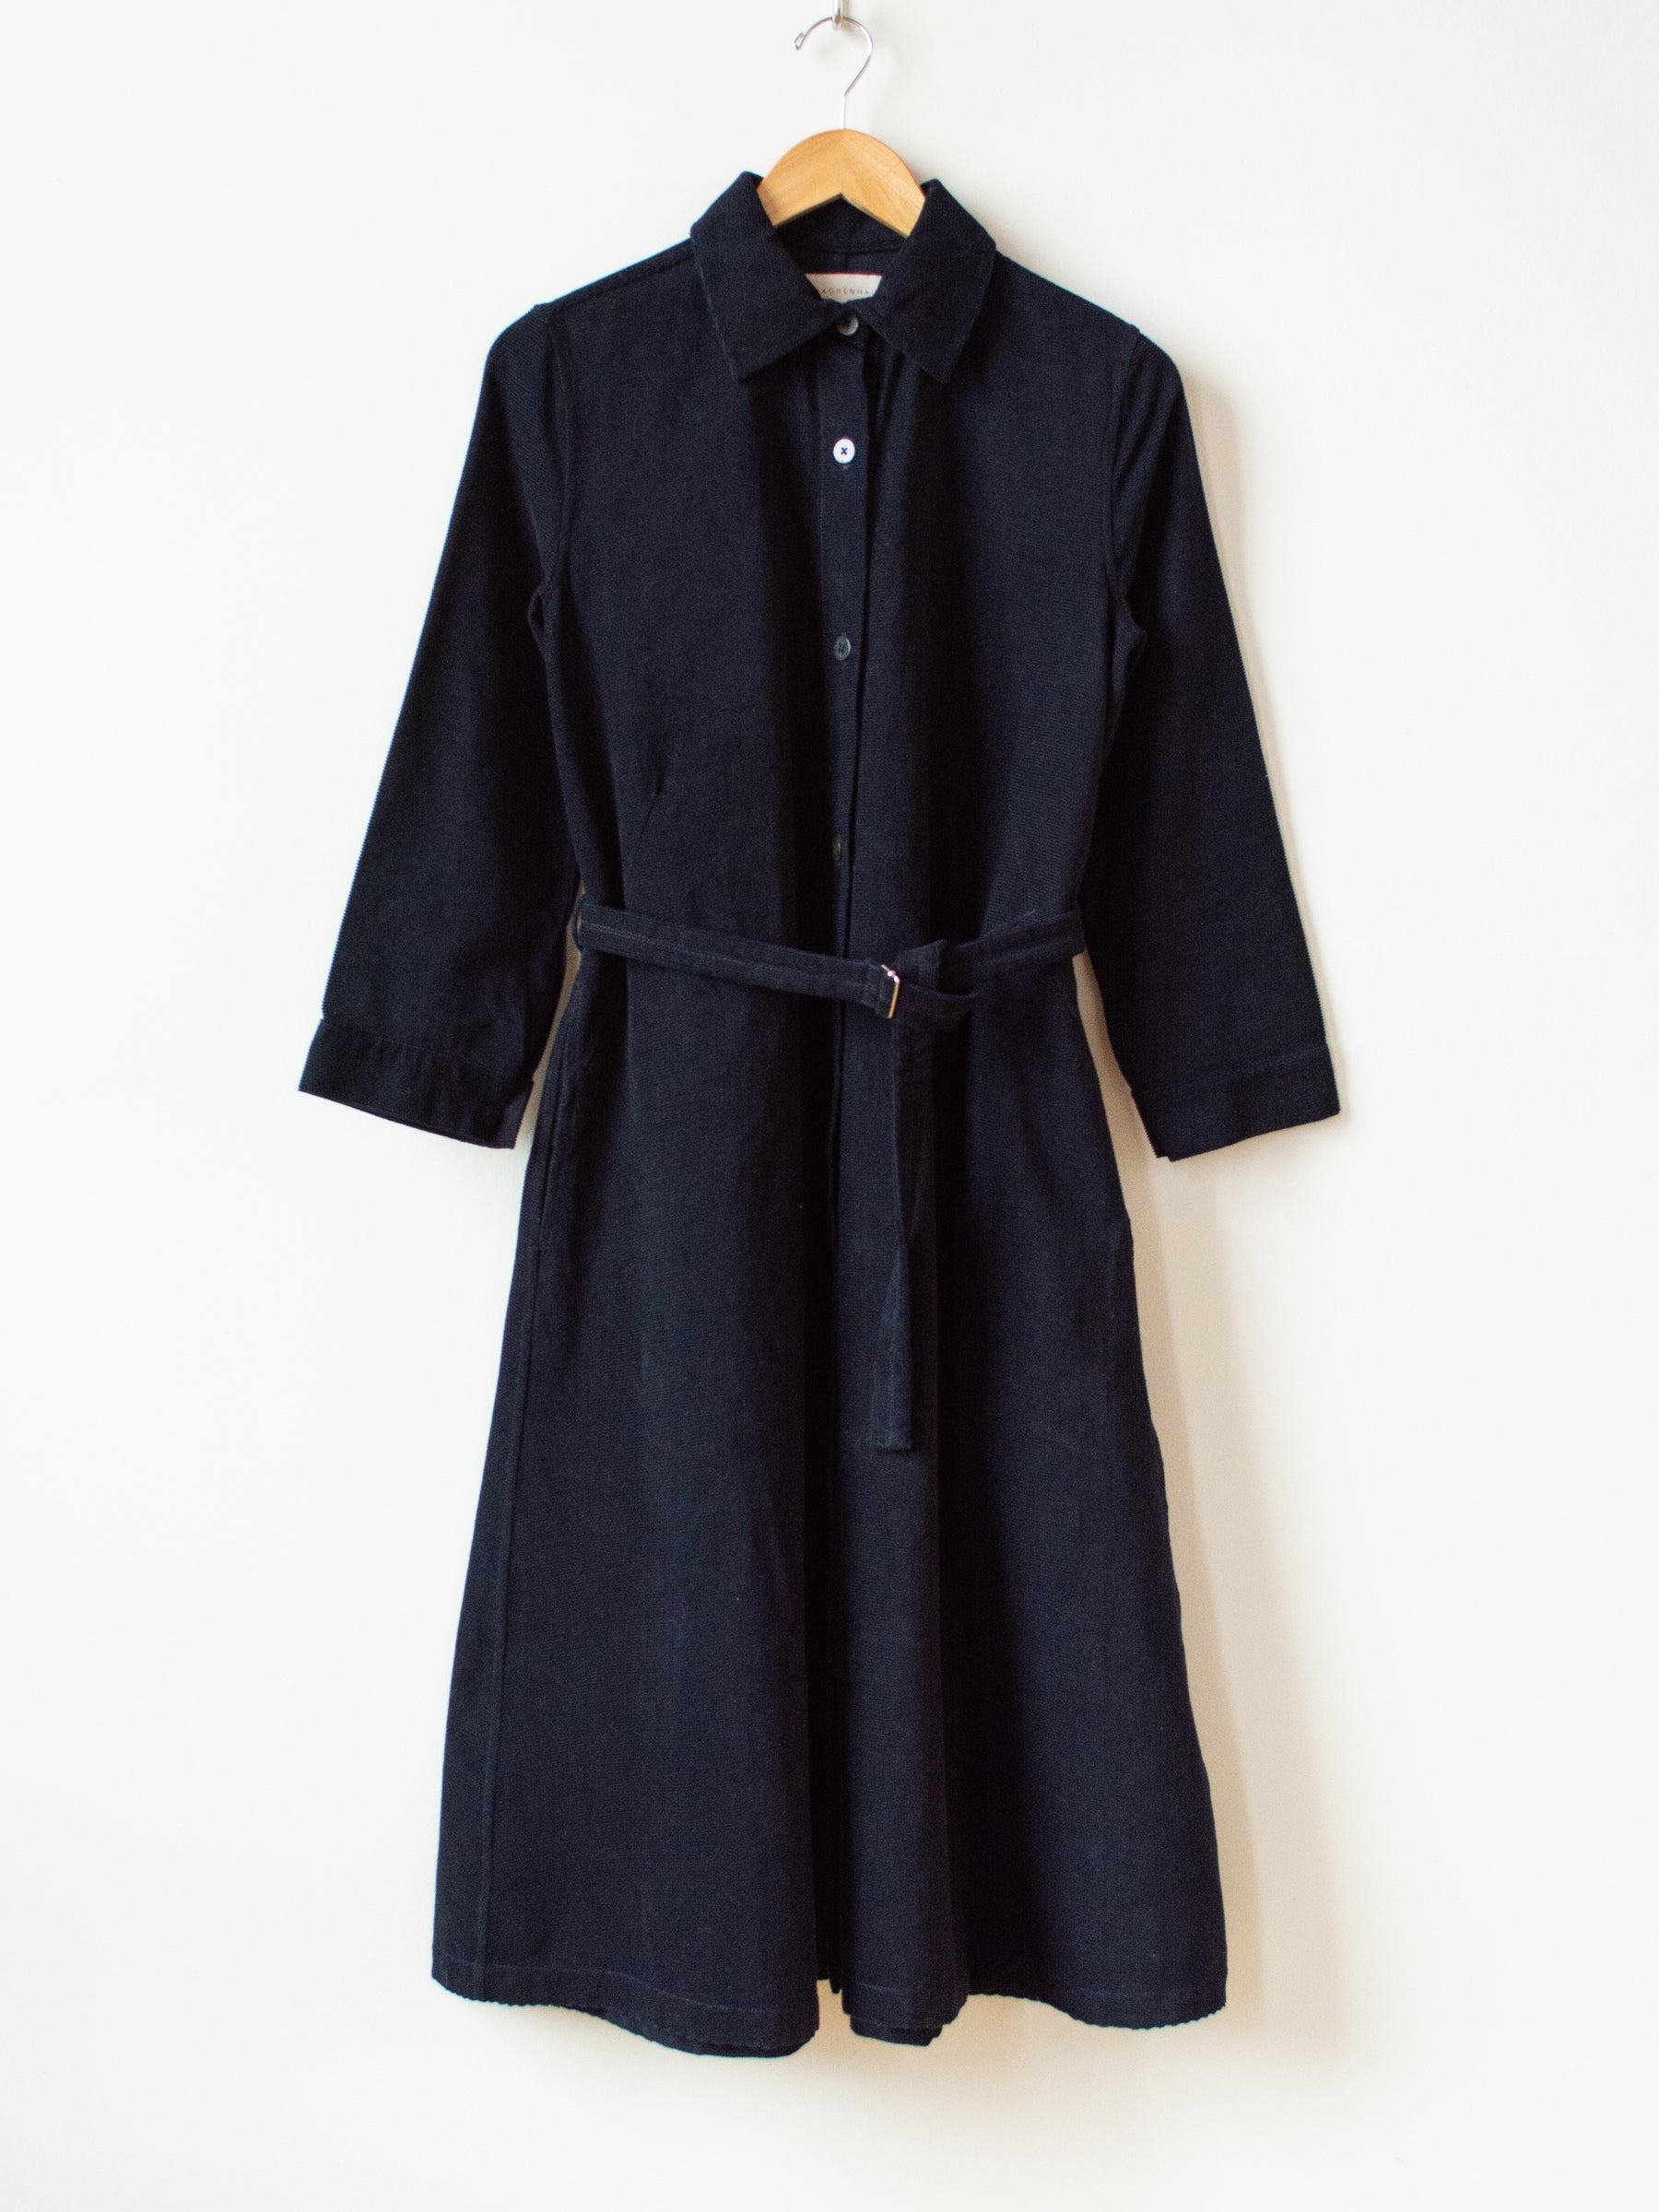 Tauri Dress - Midnight Blue Cotton Corduroy